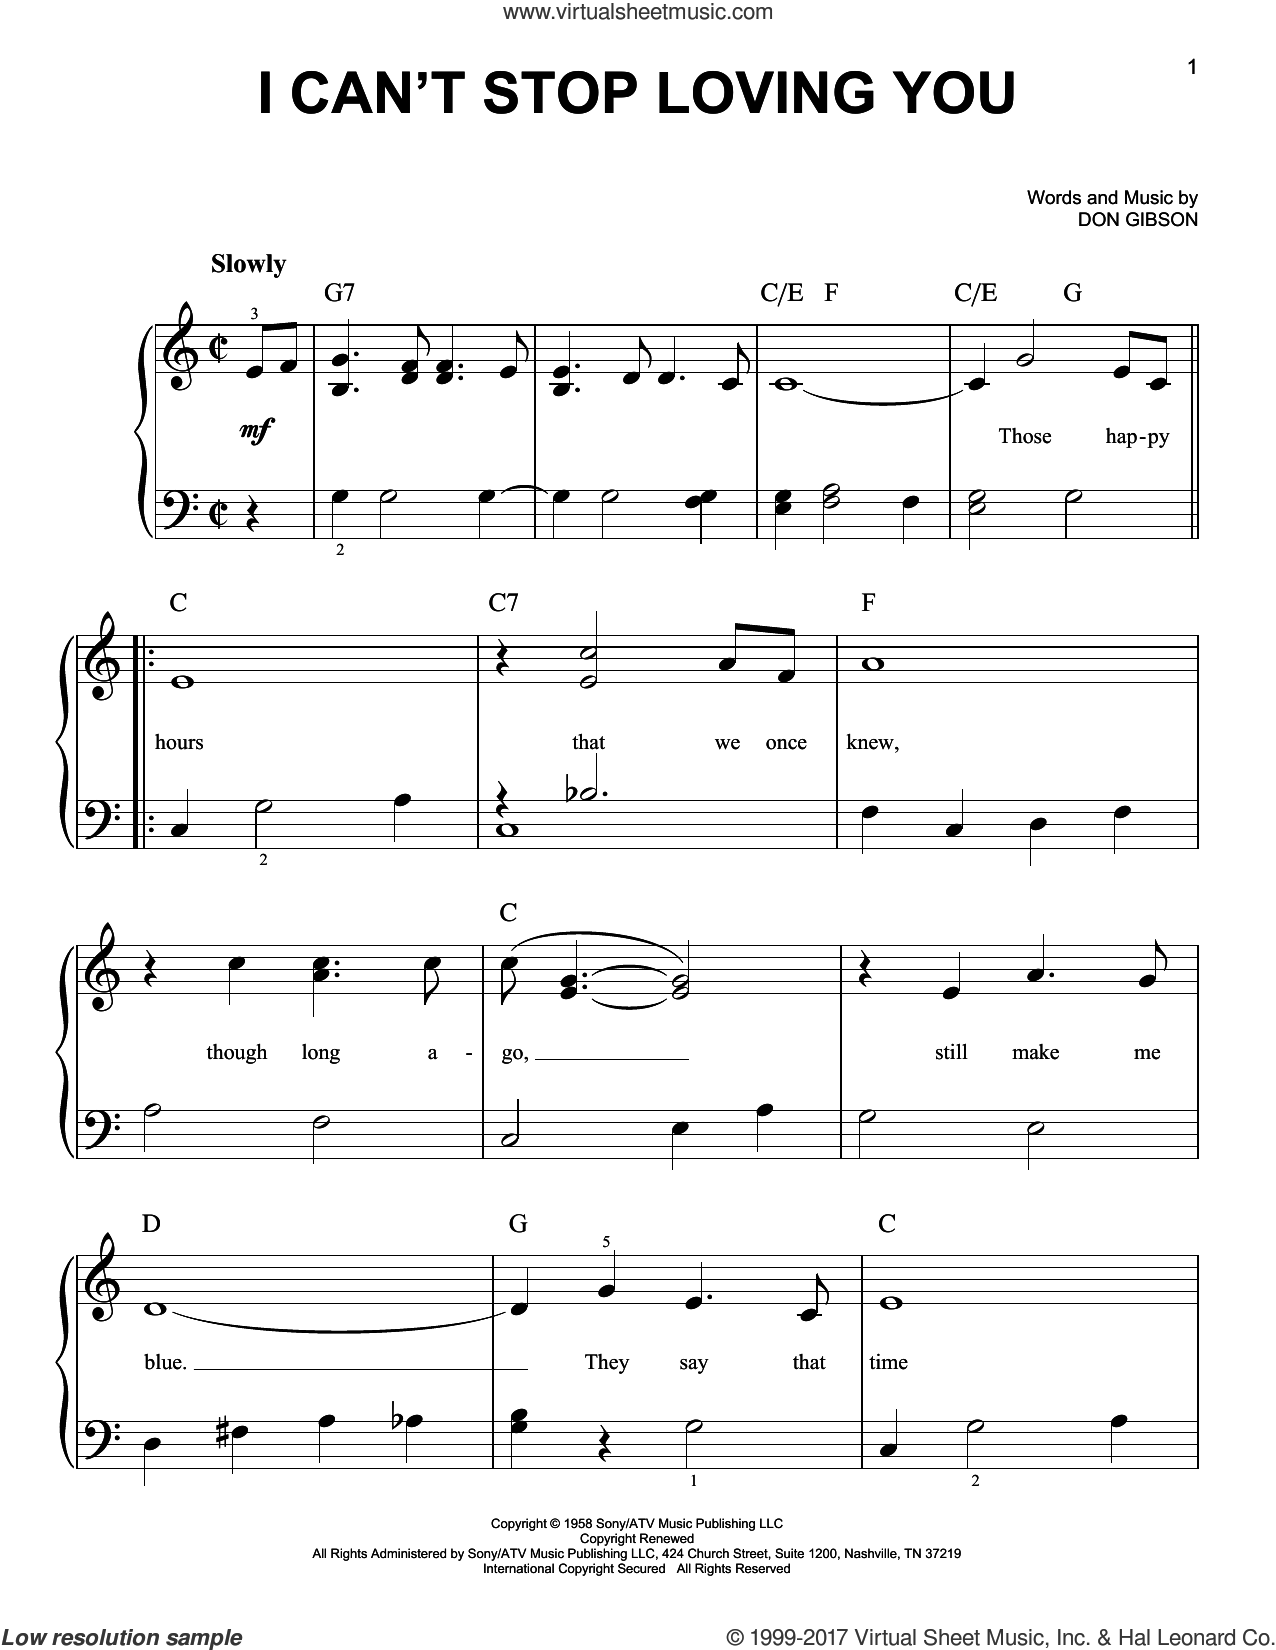 I Can't Stop Loving You sheet music for piano solo by Don Gibson, Conway Twitty, Elvis Presley, Kitty Wells and Ray Charles, easy skill level